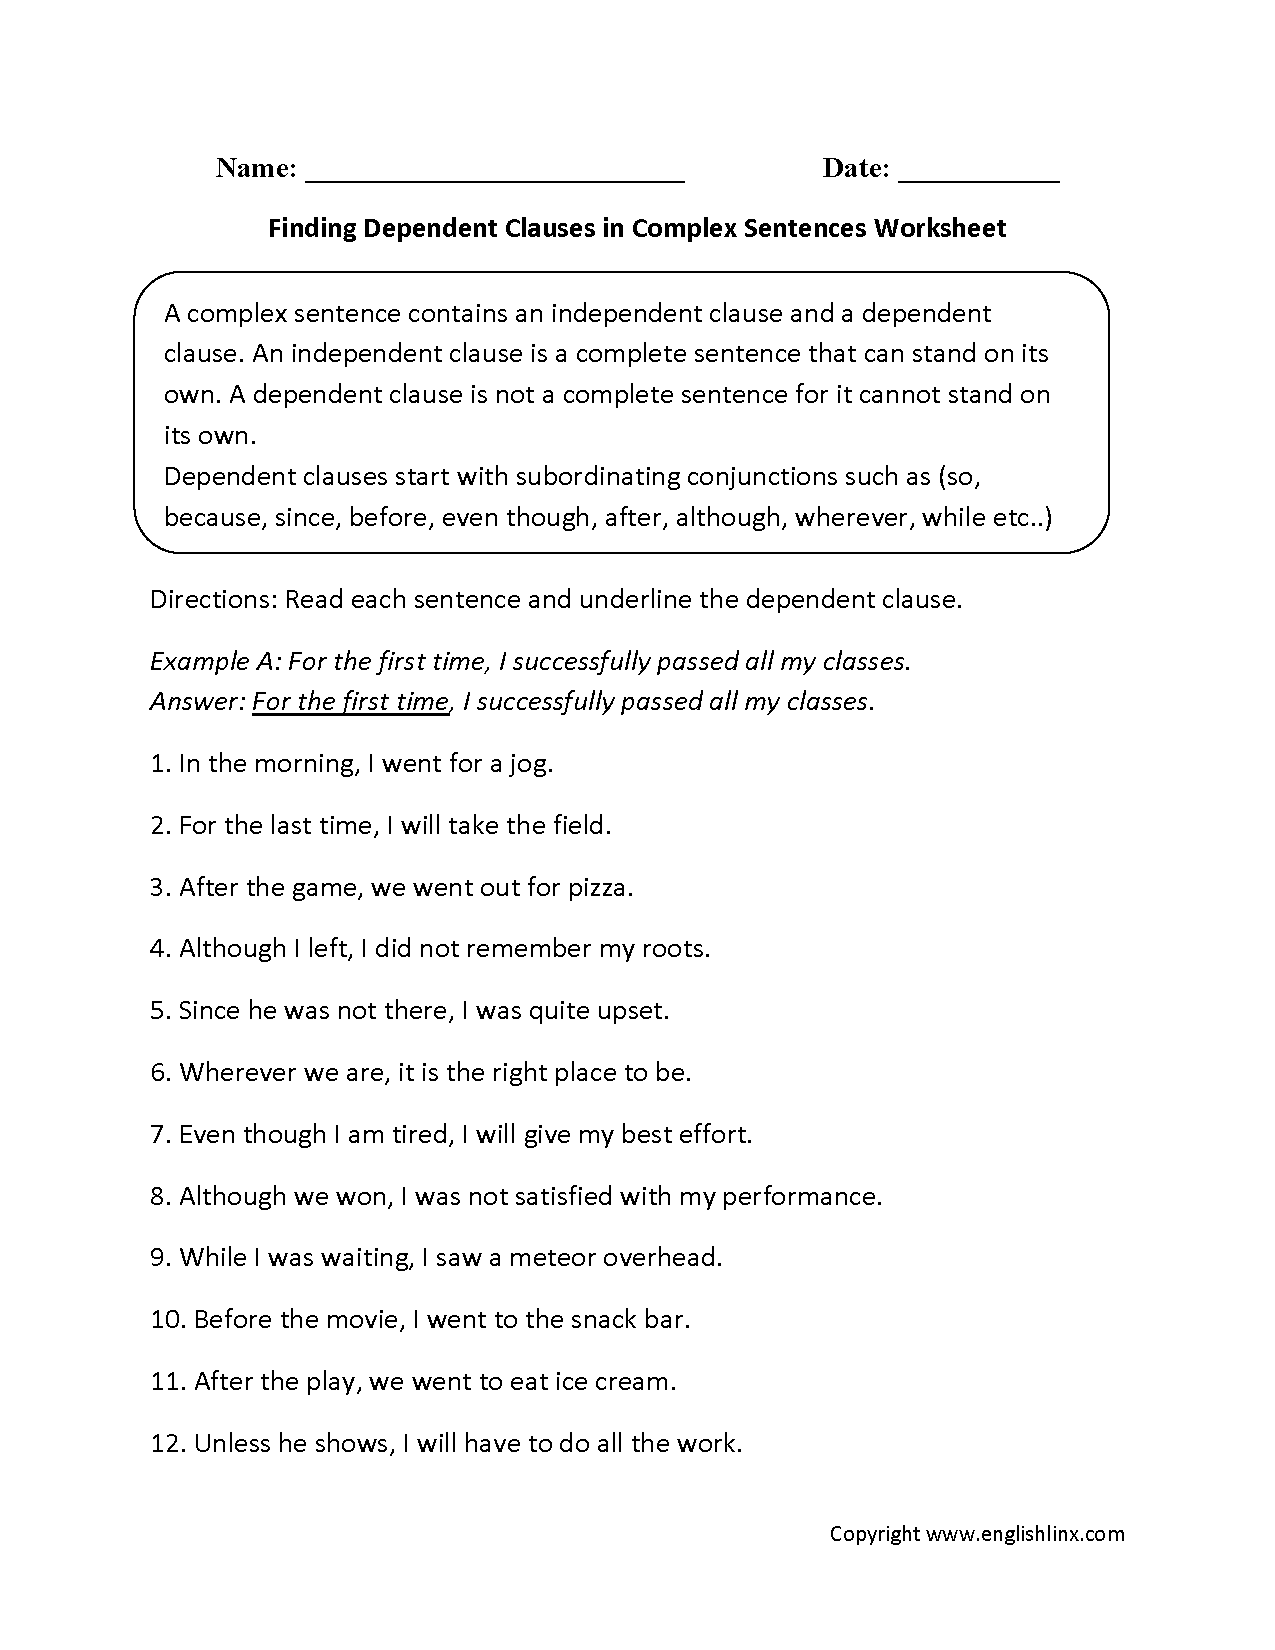 Worksheets | Finding Dependent Clauses Complex Sentences Worksheets ...